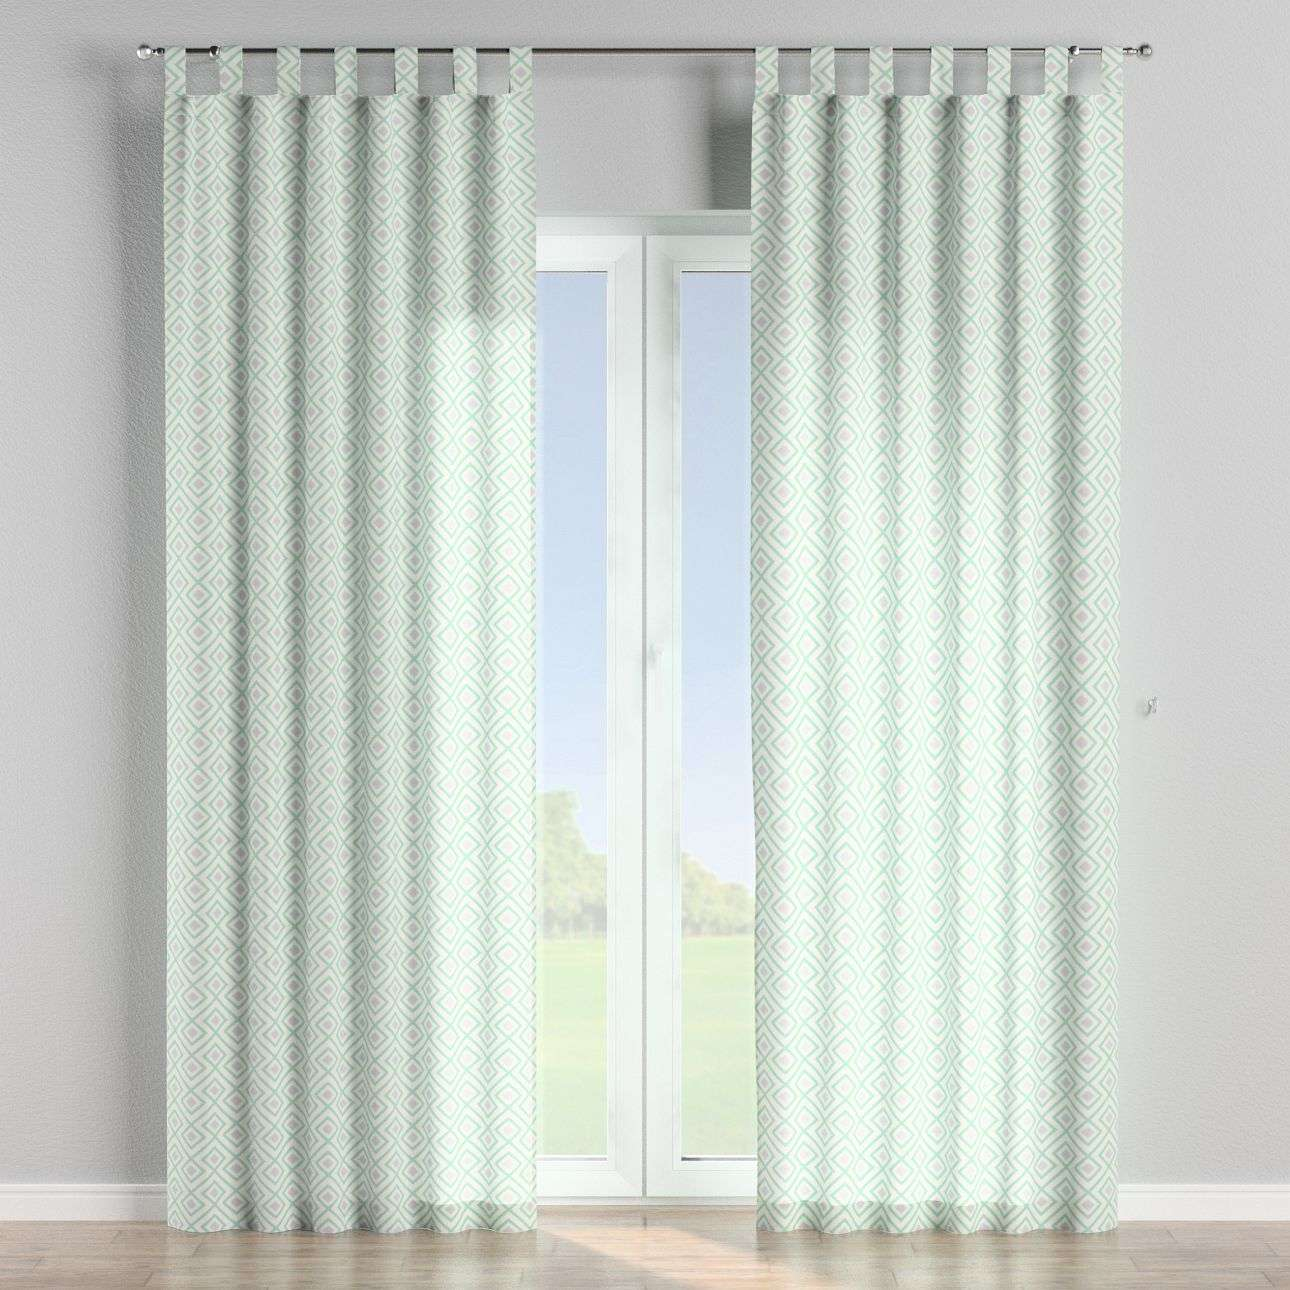 Tab top curtains in collection Geometric, fabric: 141-45